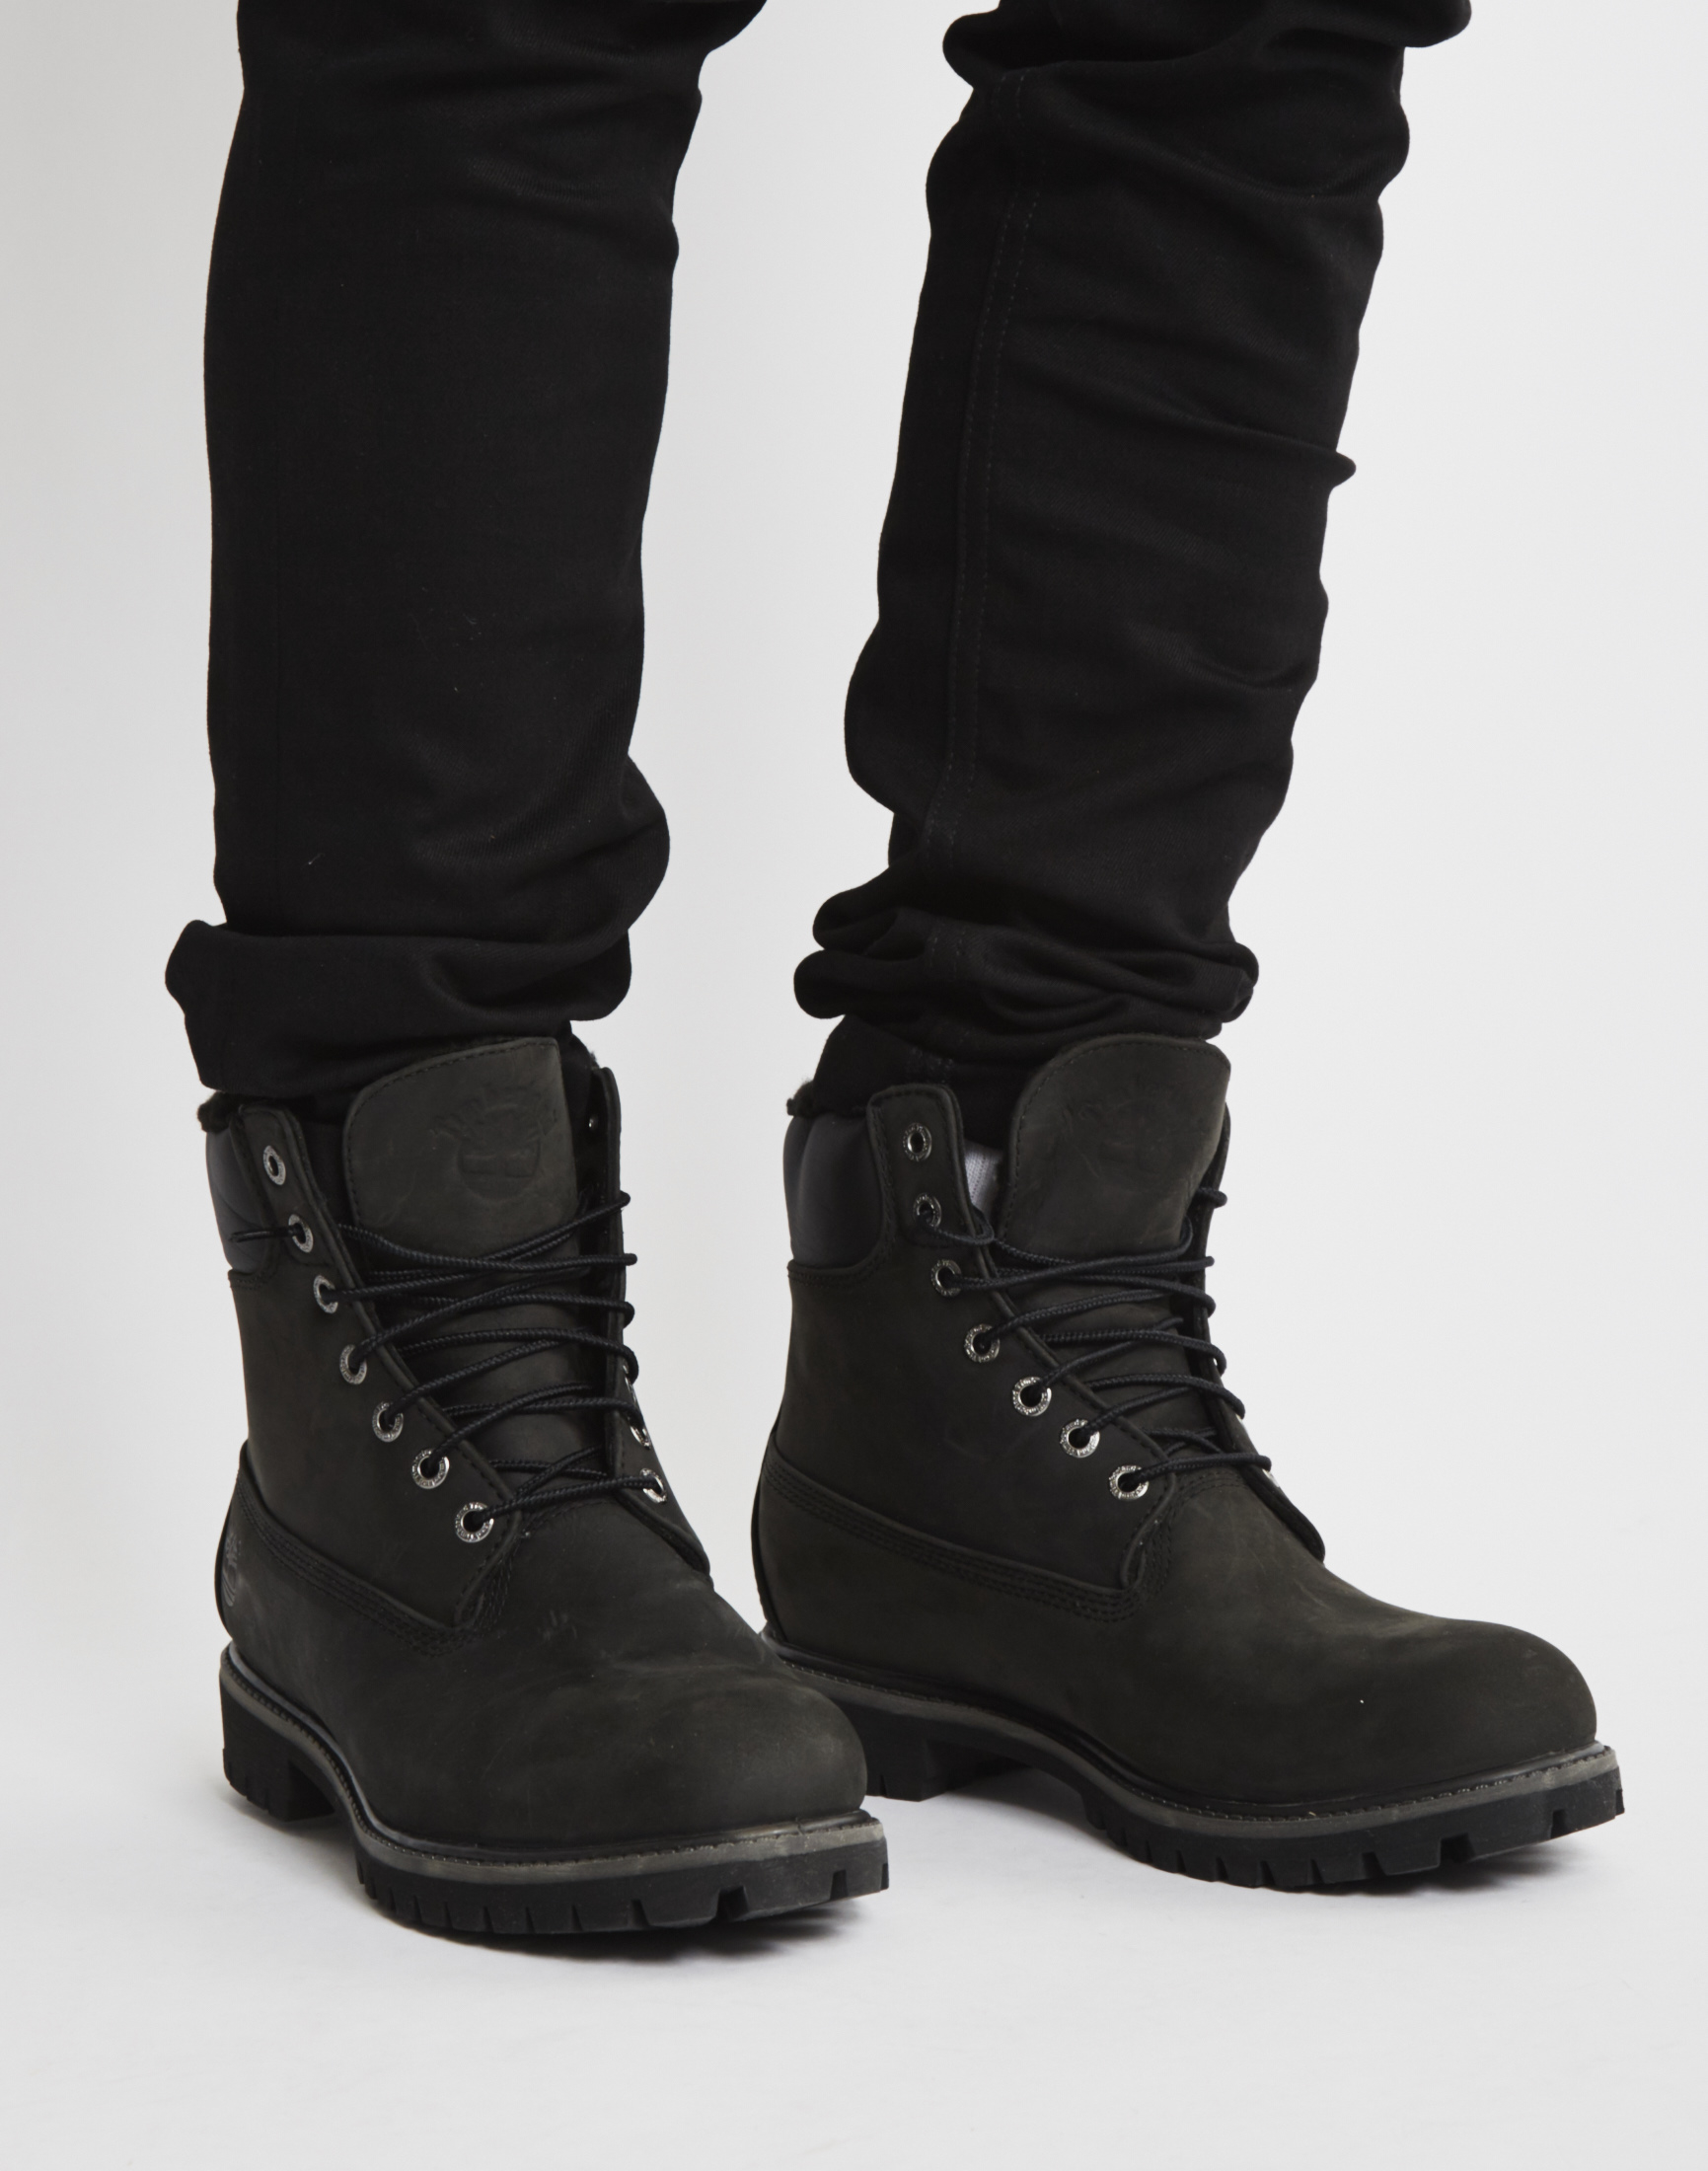 Lyst - Timberland Heritage 6